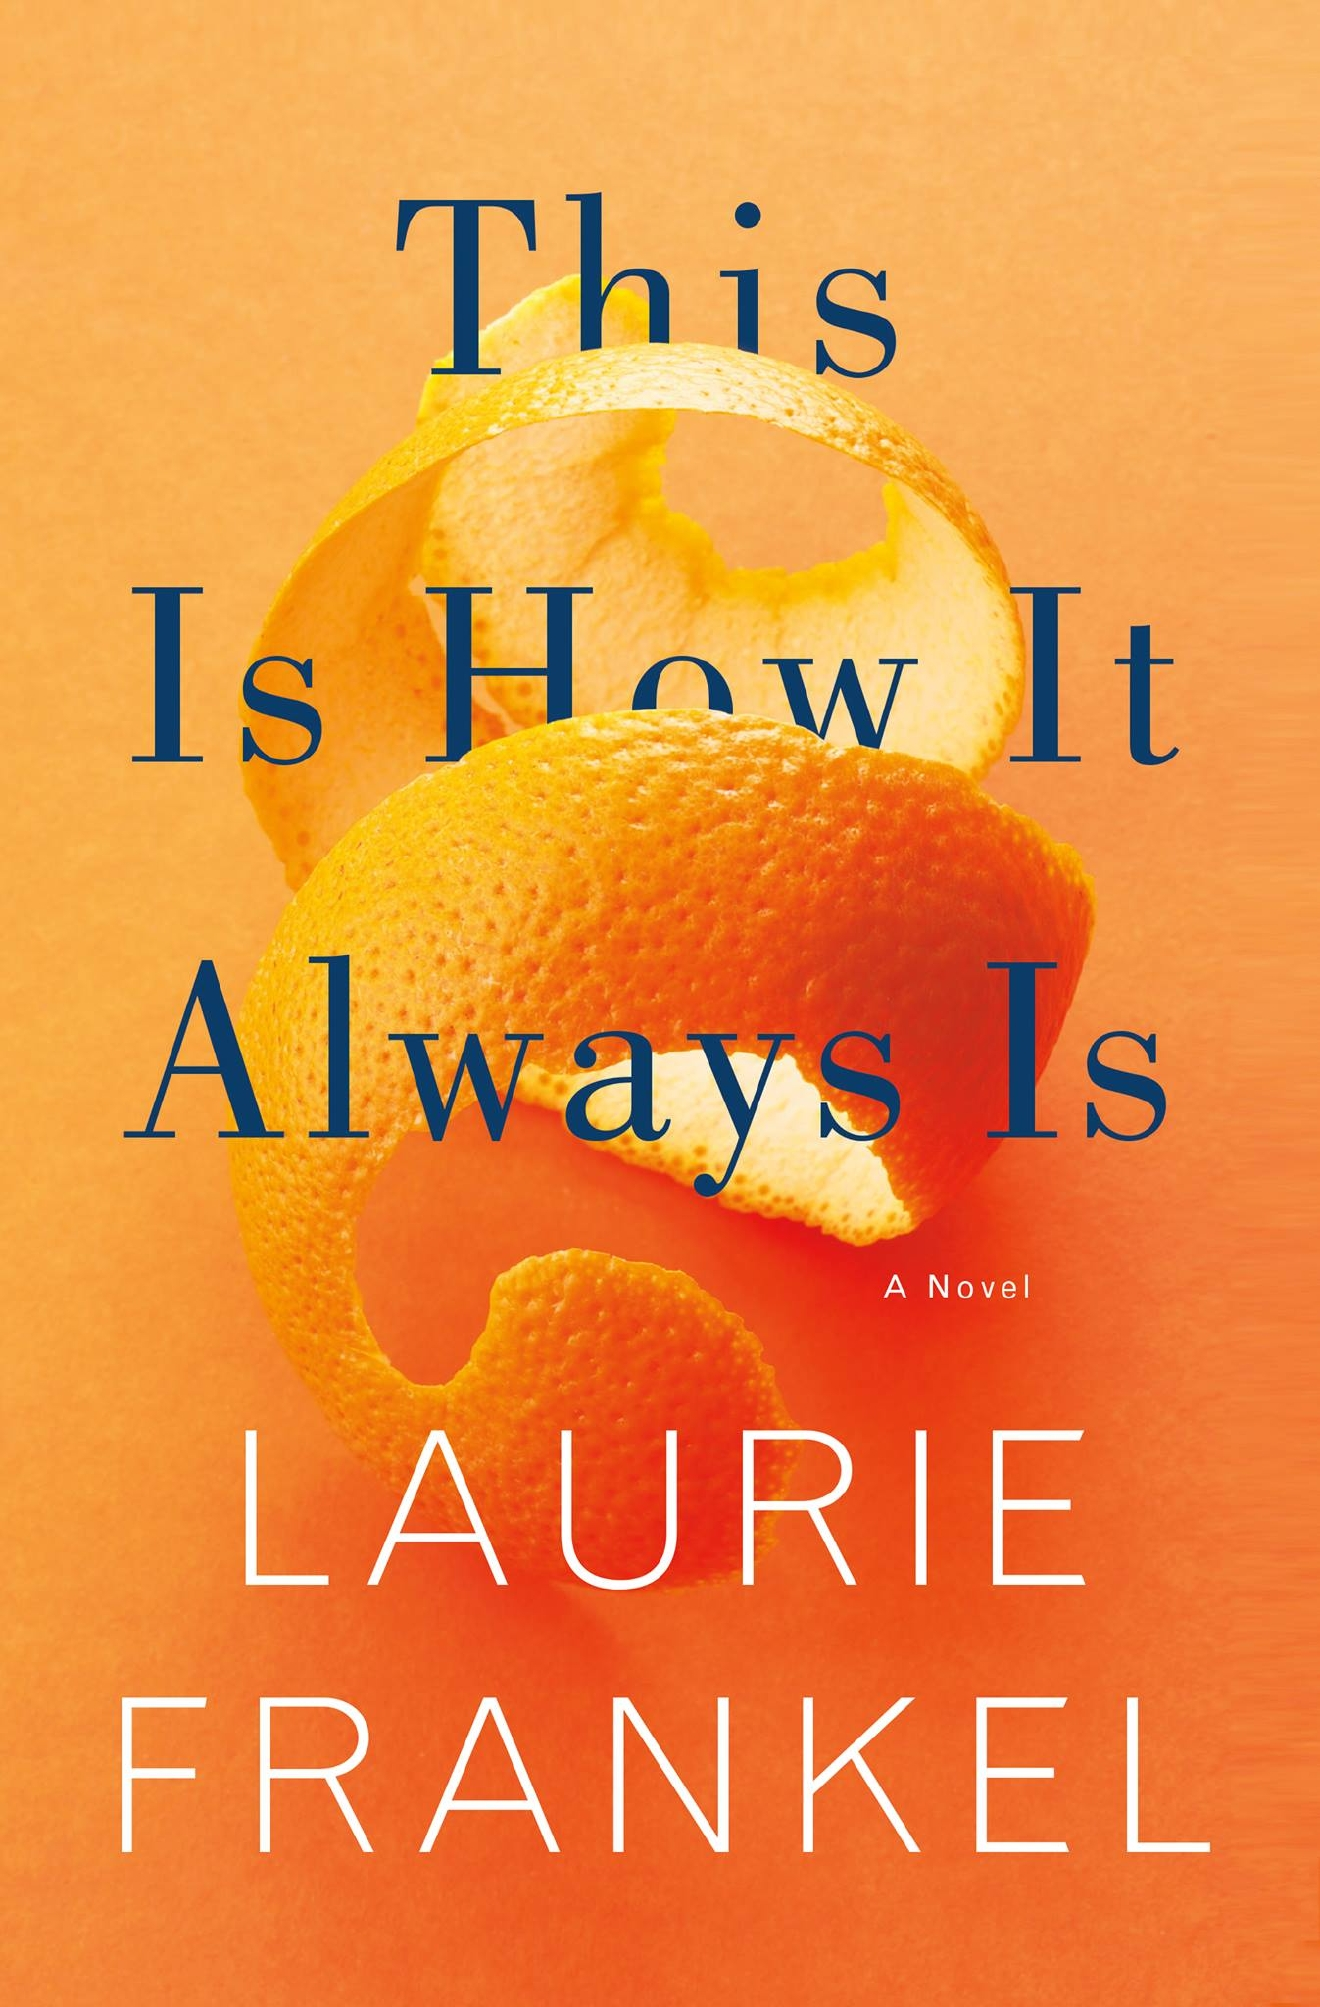 This month we'll be reading 'This Is How It Always Is' by local author Laurie Frankel. (Image: Flatiron Books)